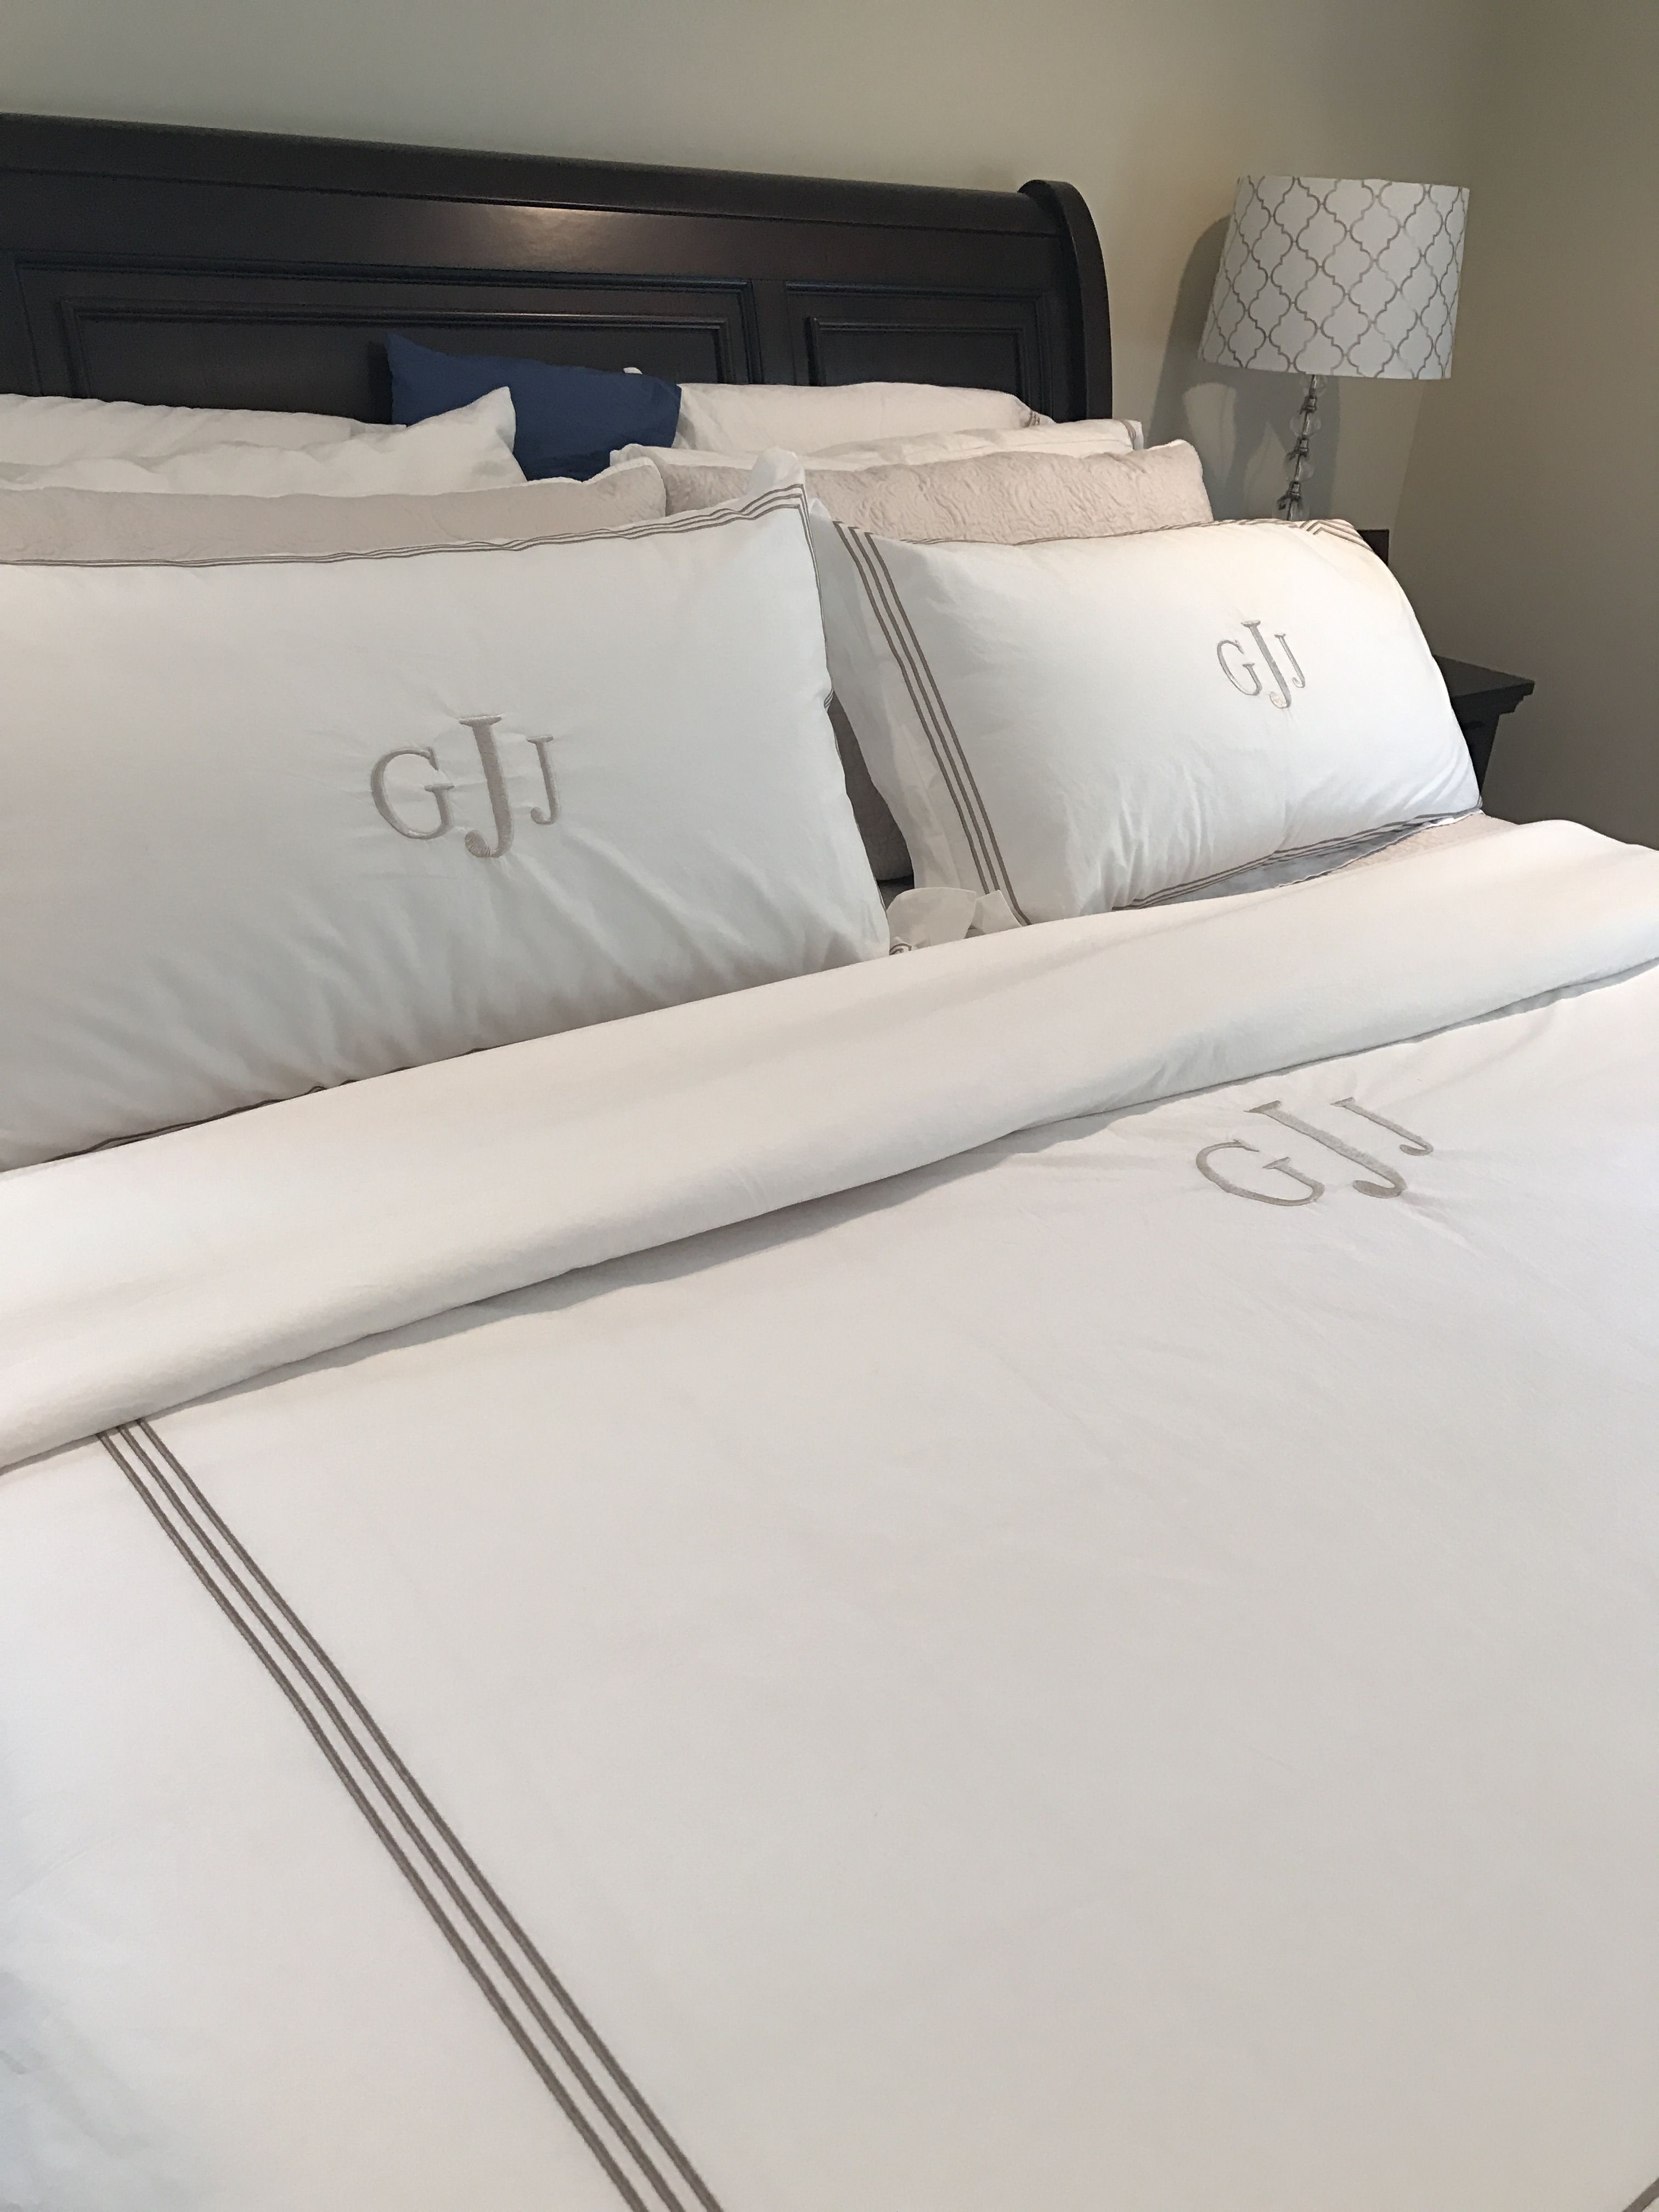 I Have Layers Of Cotton Sheets And Personalized Duvet Cover From